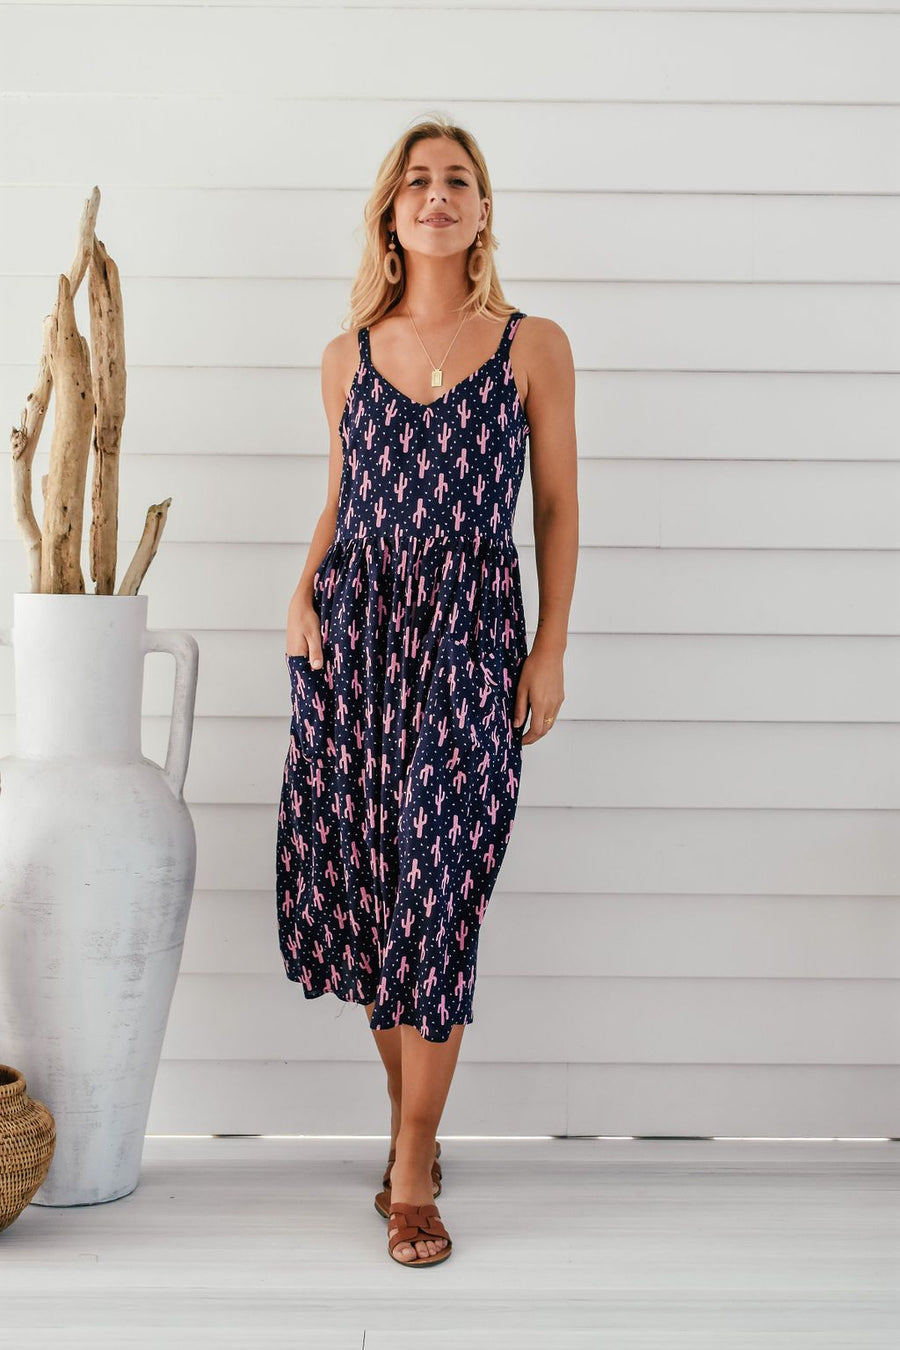 Arizona Dress | Cactus Print - Gray Label DRESS Gray Label